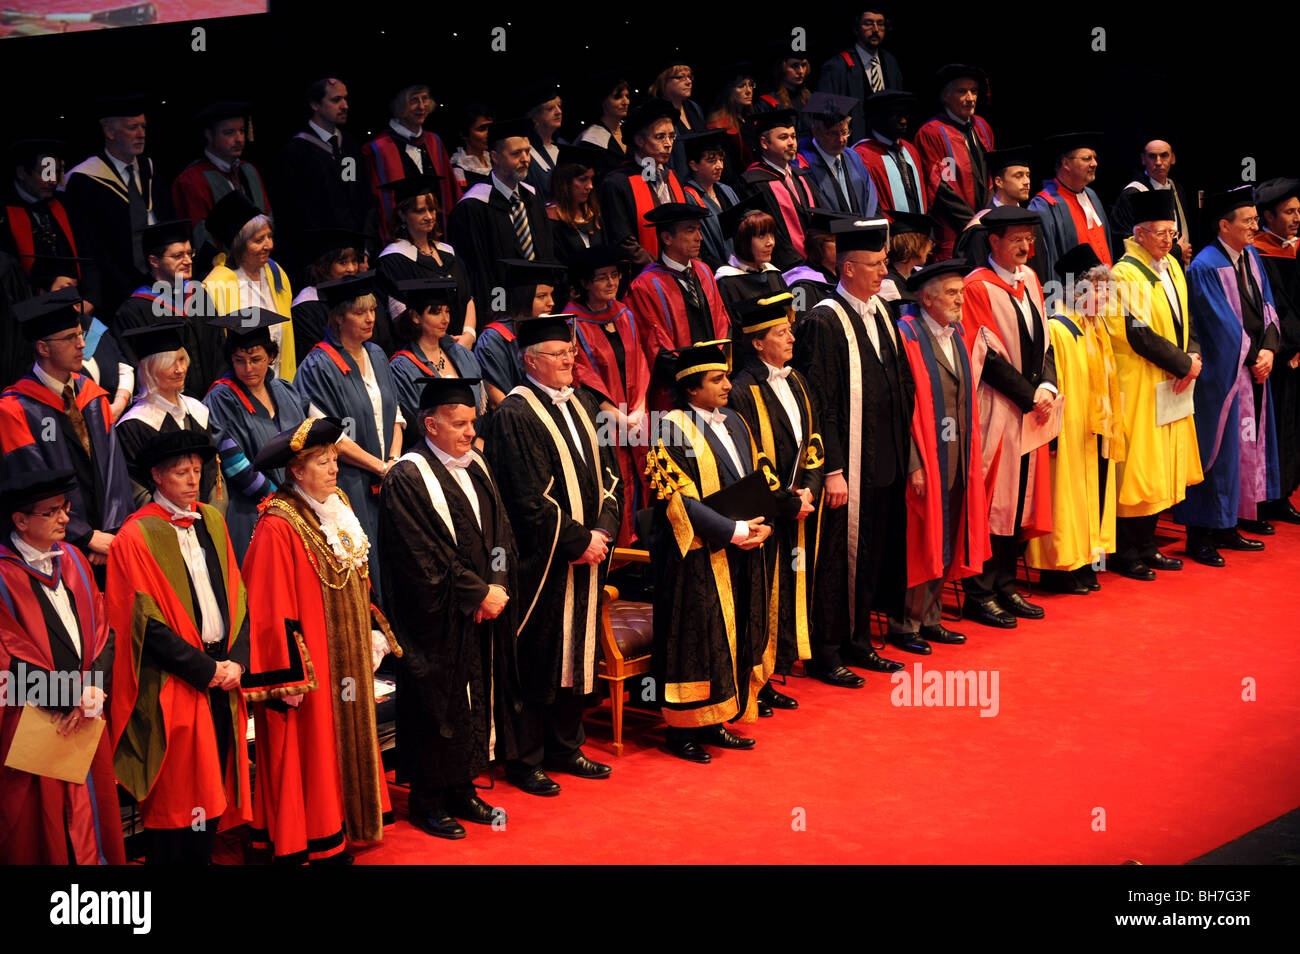 The University of Sussex Chancellor Sanjeev Bhaskar centre stage at the start of the winter graduation ceremony - Stock Image